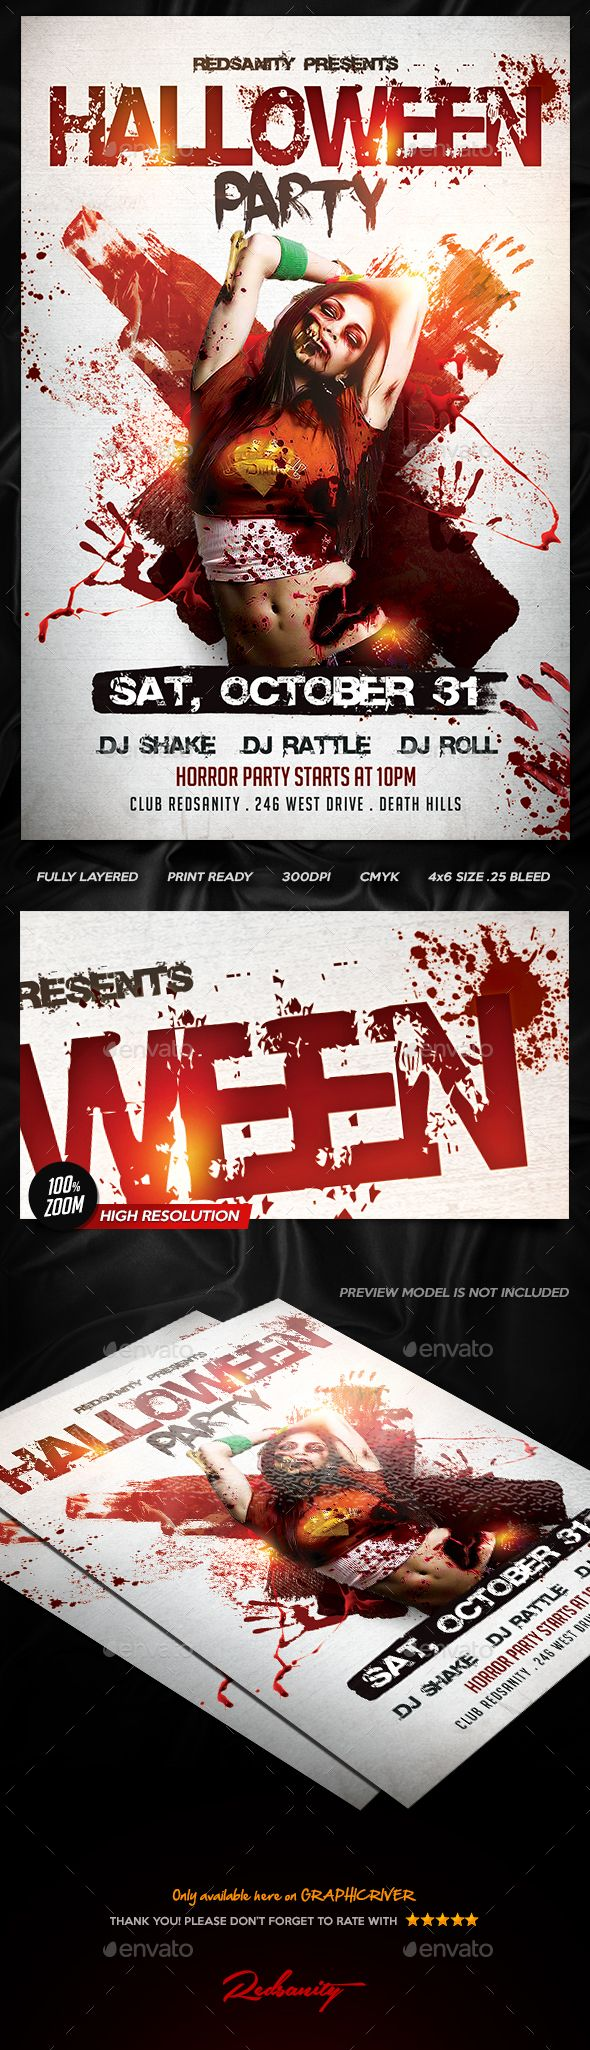 Halloween Party Flyer  Dj Download Halloween Party Flyer And